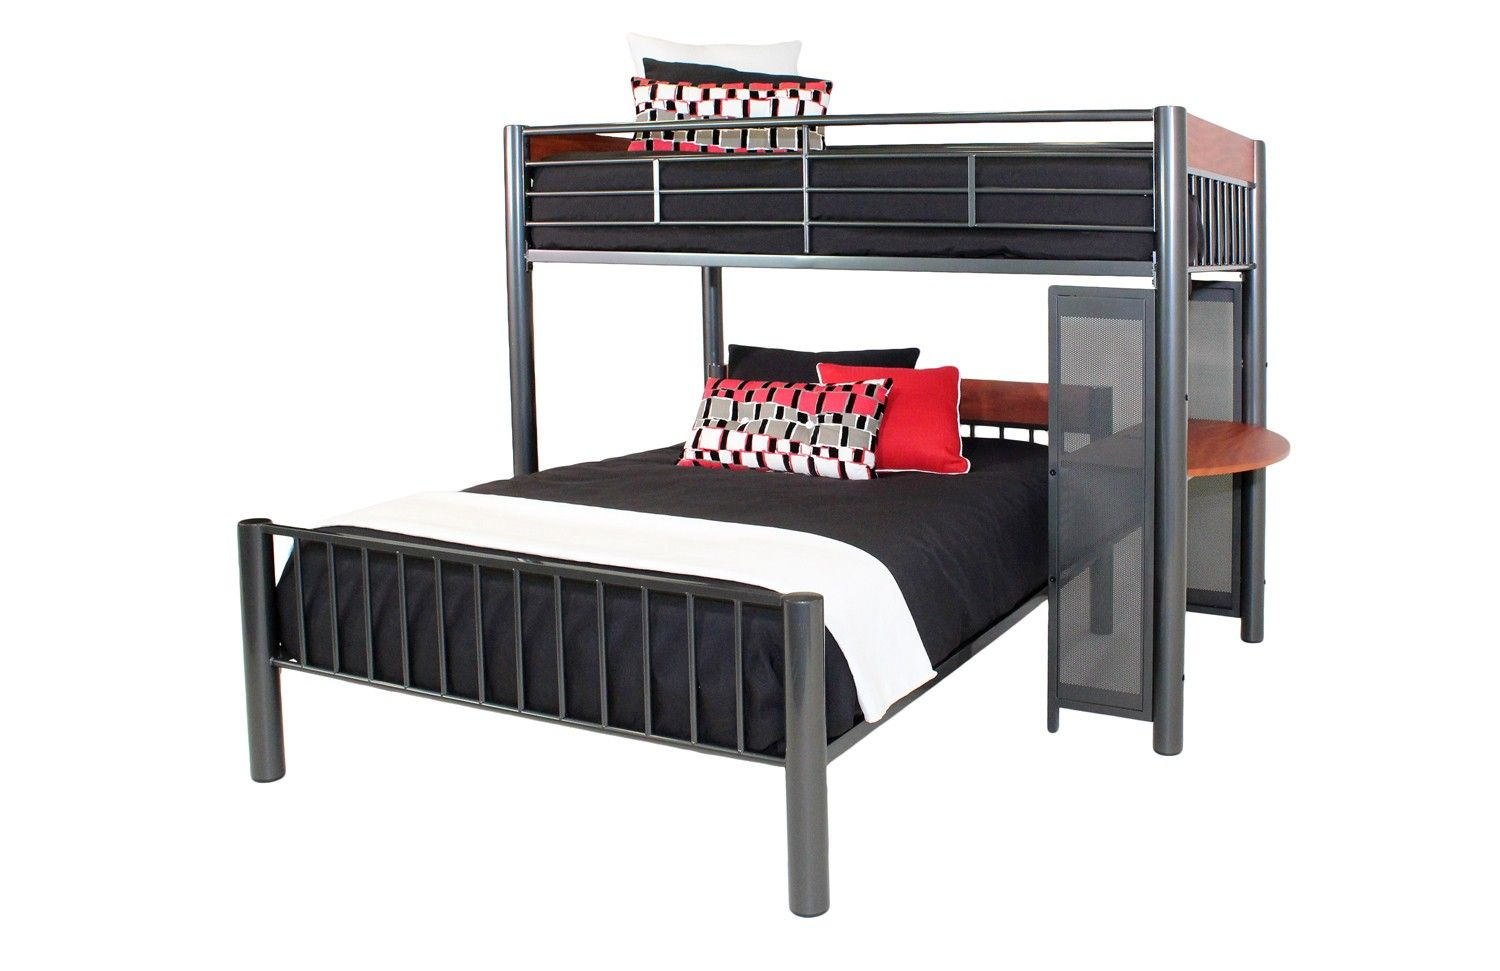 Tron Loft Bunk Bed   Bunk Beds   Kids U0026 Teens | Mor Furniture For Less